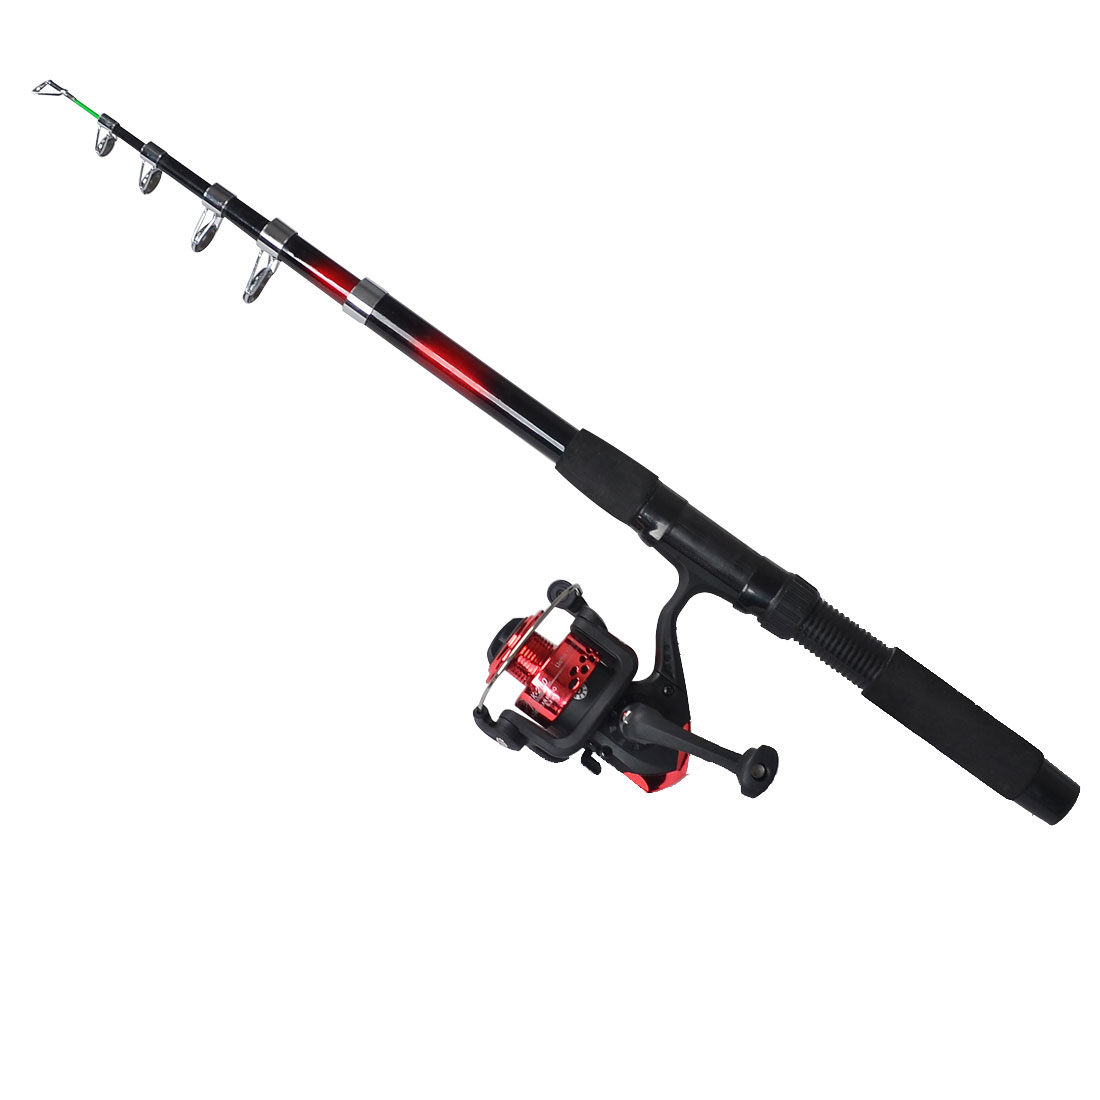 Fish Rod 6 Sections Retractable Red Black 1.95M Long w Fishing Spinning Reel